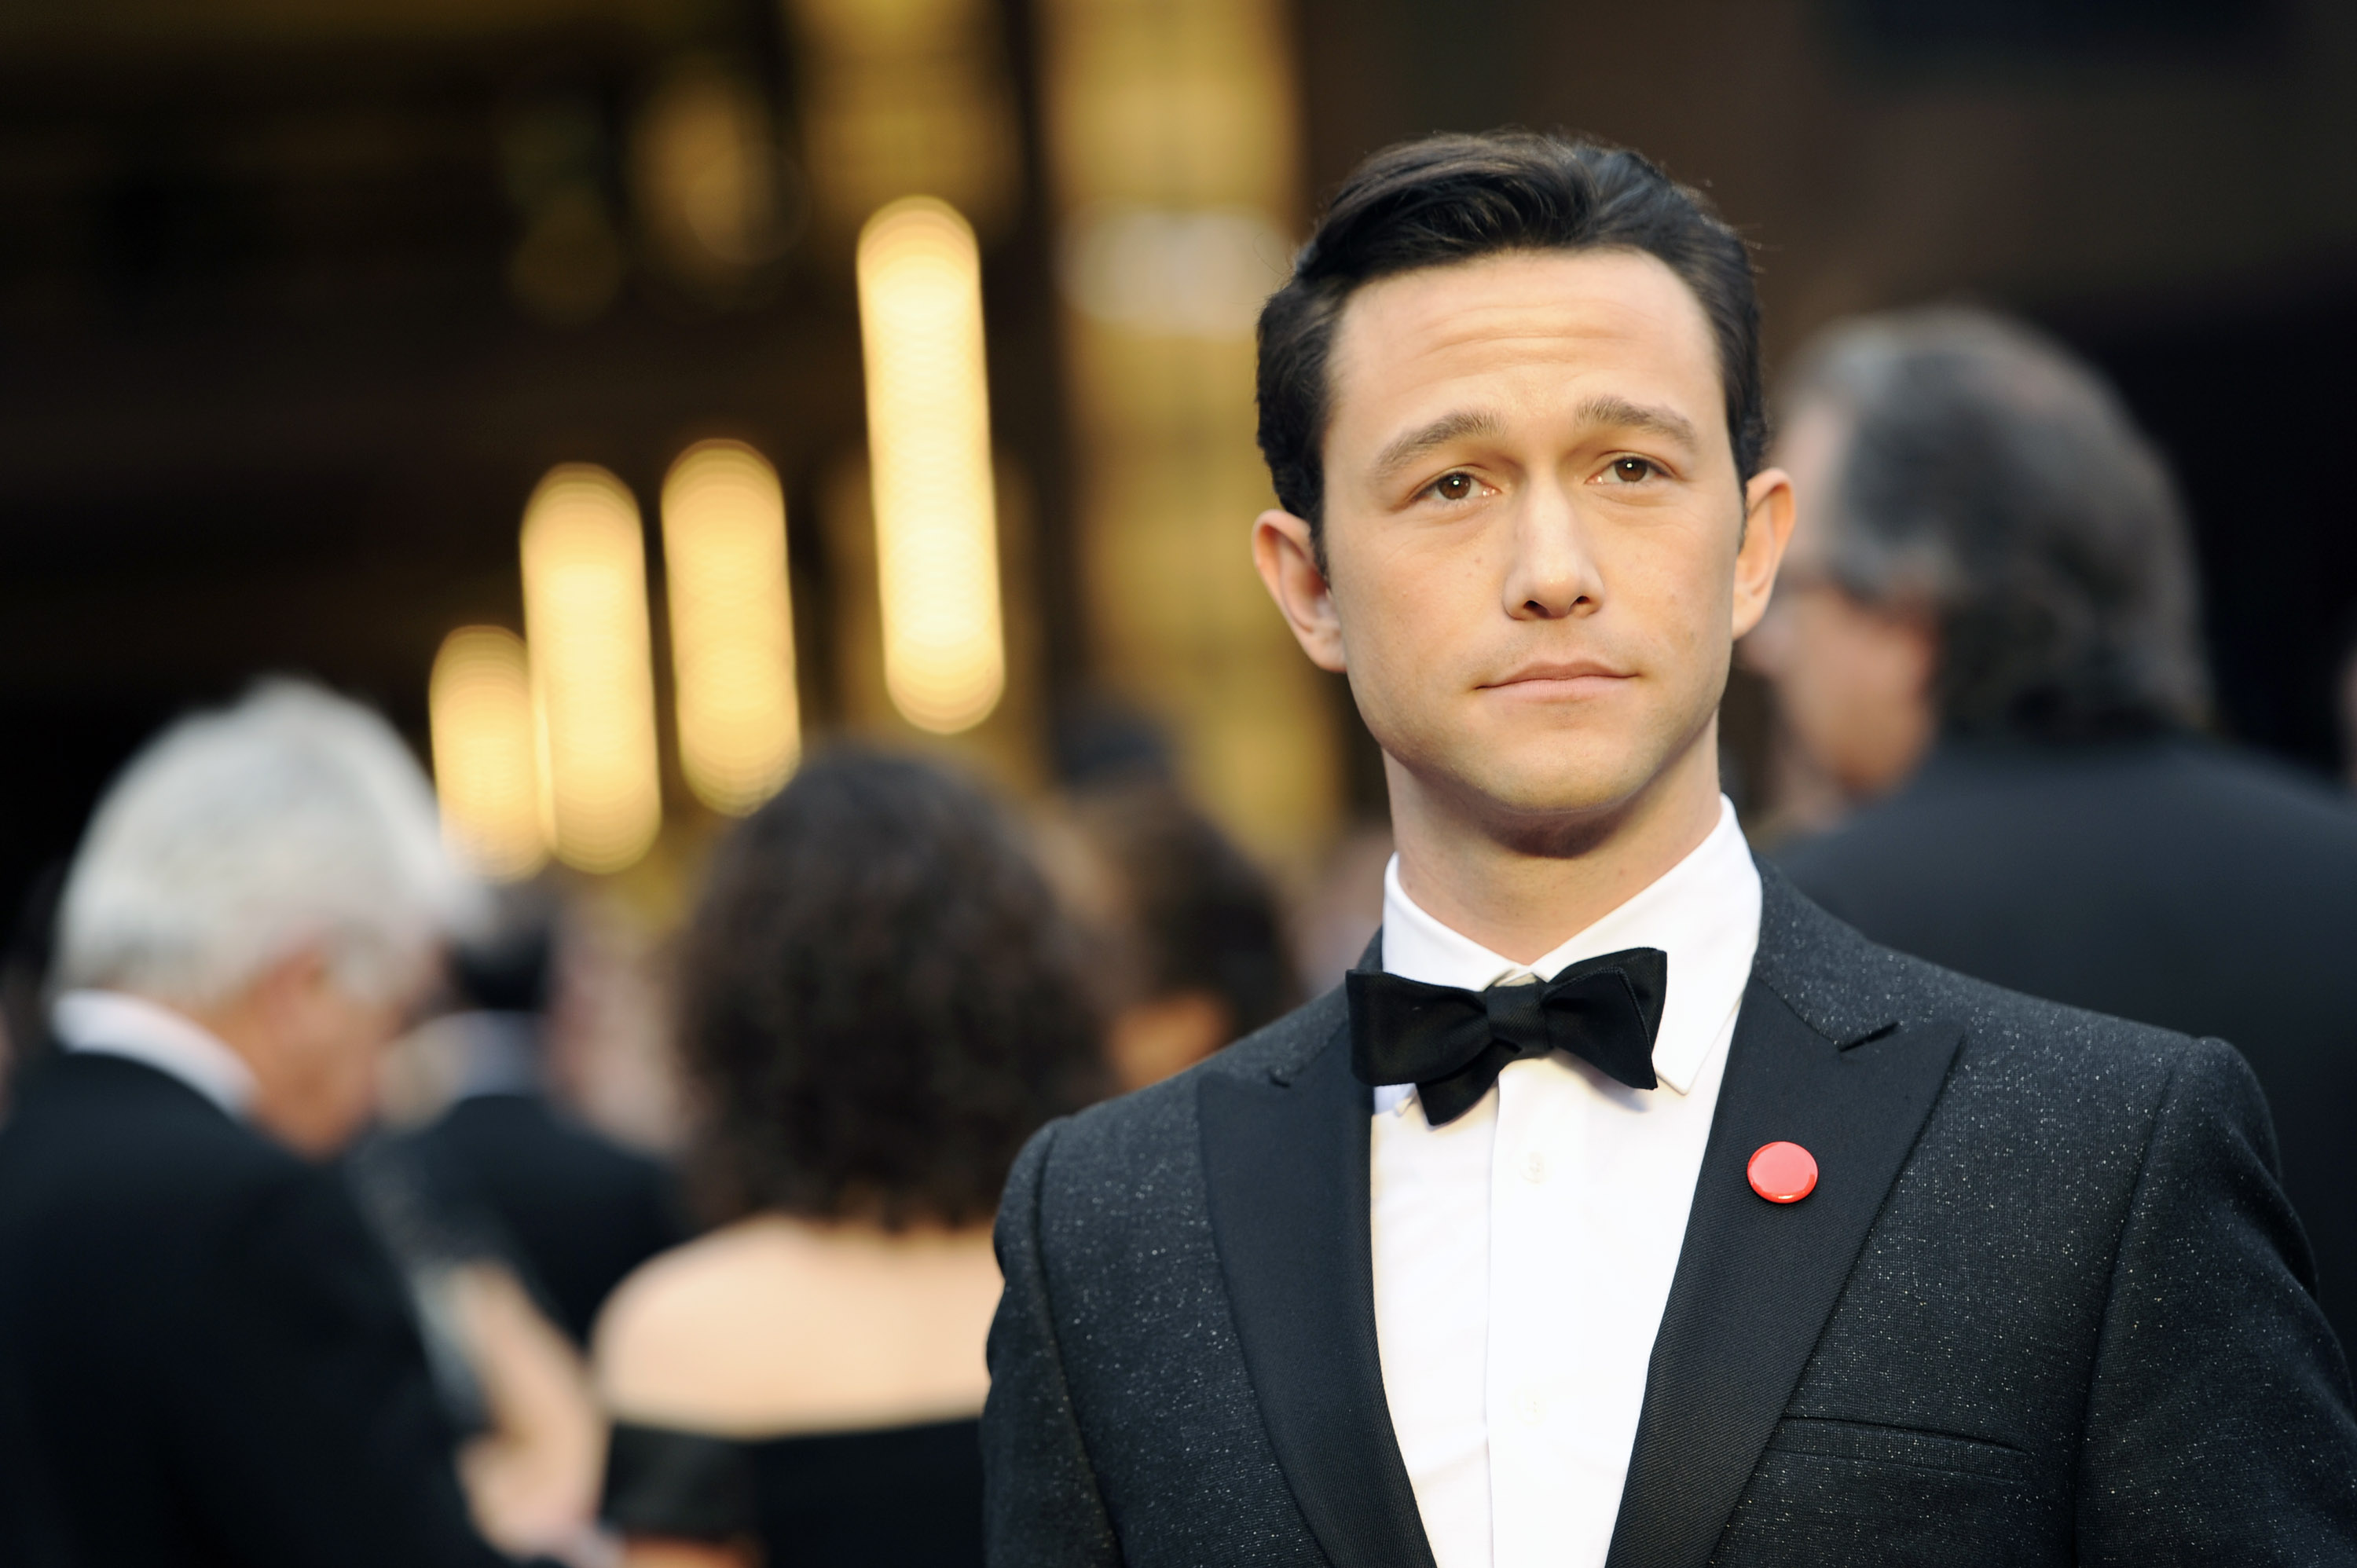 Joseph Gordon-Levitt arrives at the Oscars on March 2, 2014, at the Dolby Theatre in Los Angeles.